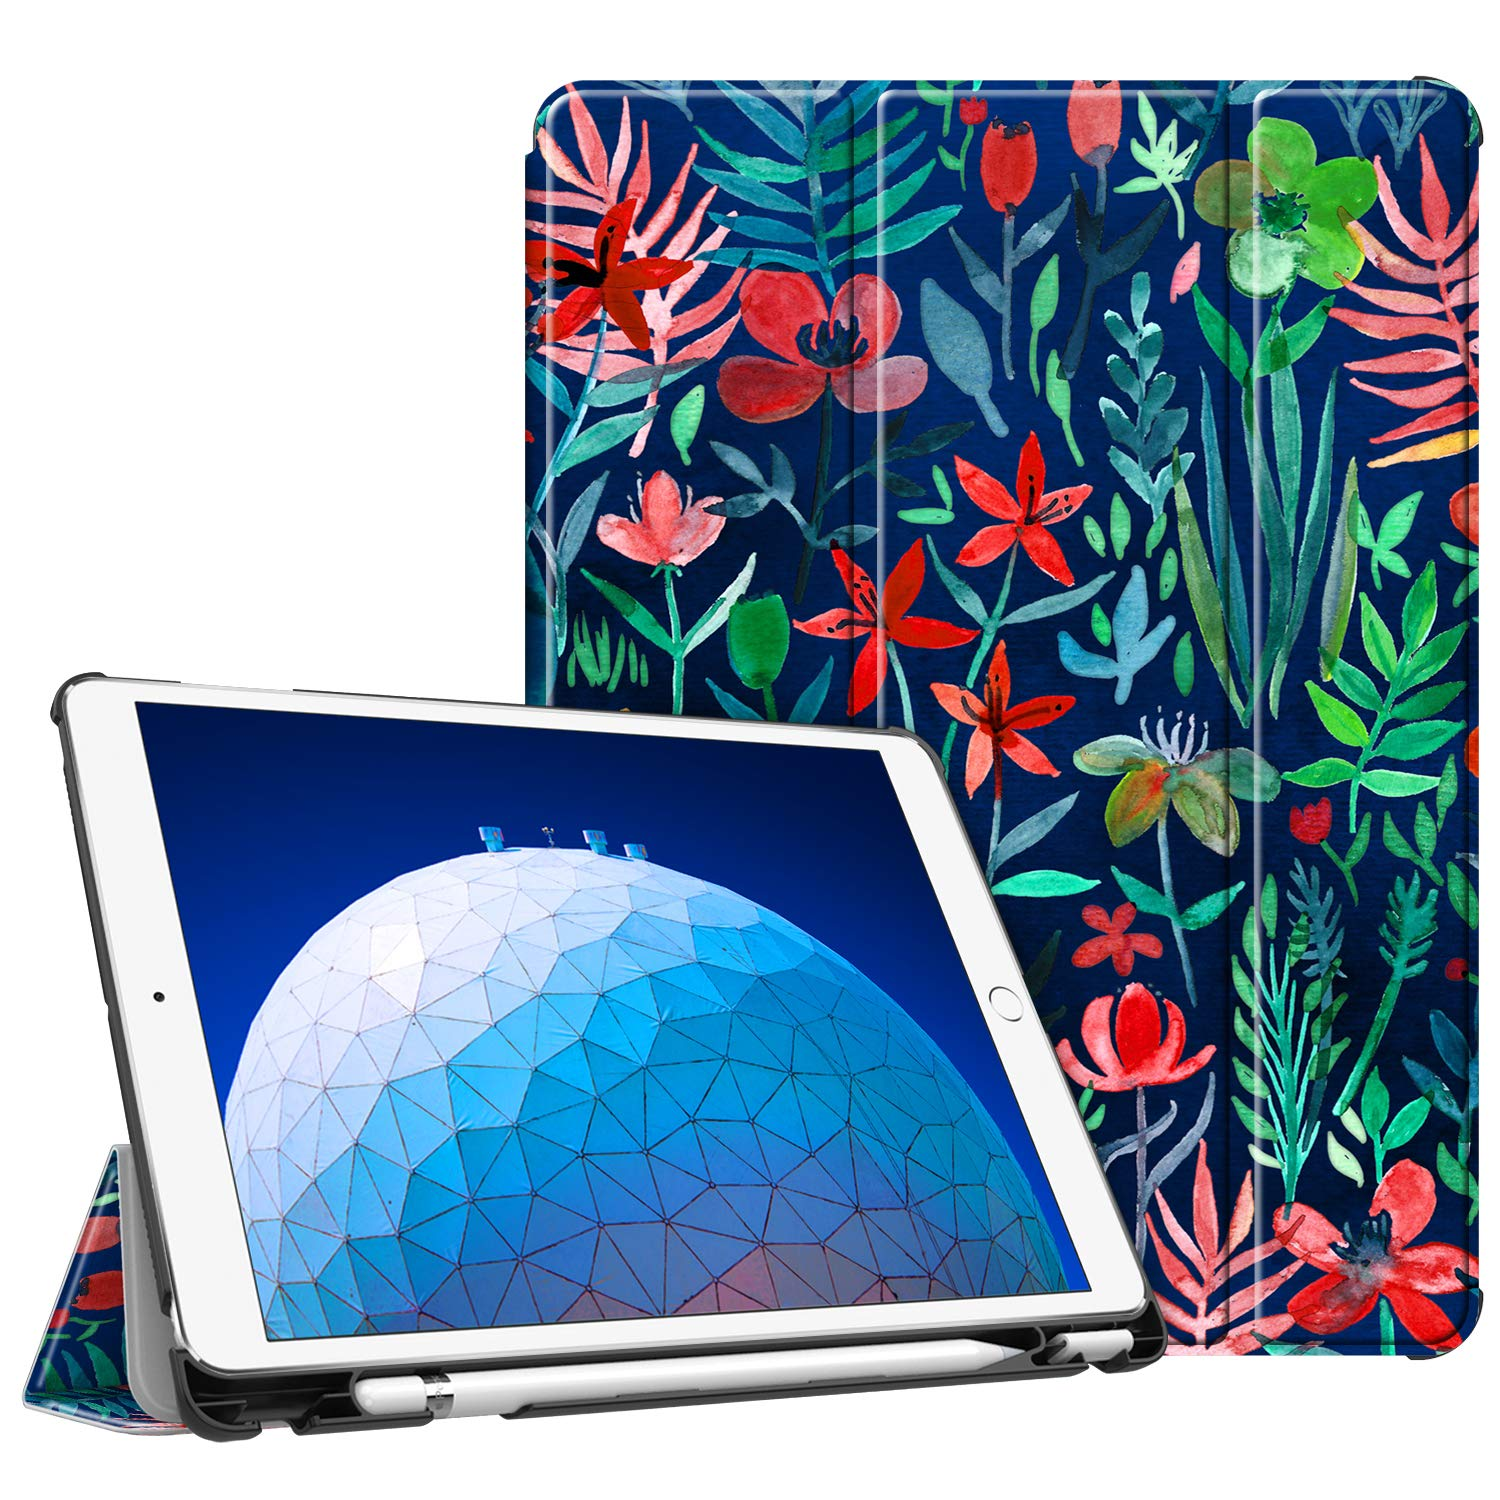 """Fintie Case for iPad Air (3rd Gen) 10.5"""" 2019 / iPad Pro 10.5"""" 2017 - [SlimShell] Ultra Lightweight Standing Protective Cover with Built-in Pencil Holder, Auto Wake/Sleep (Jungle Night)"""